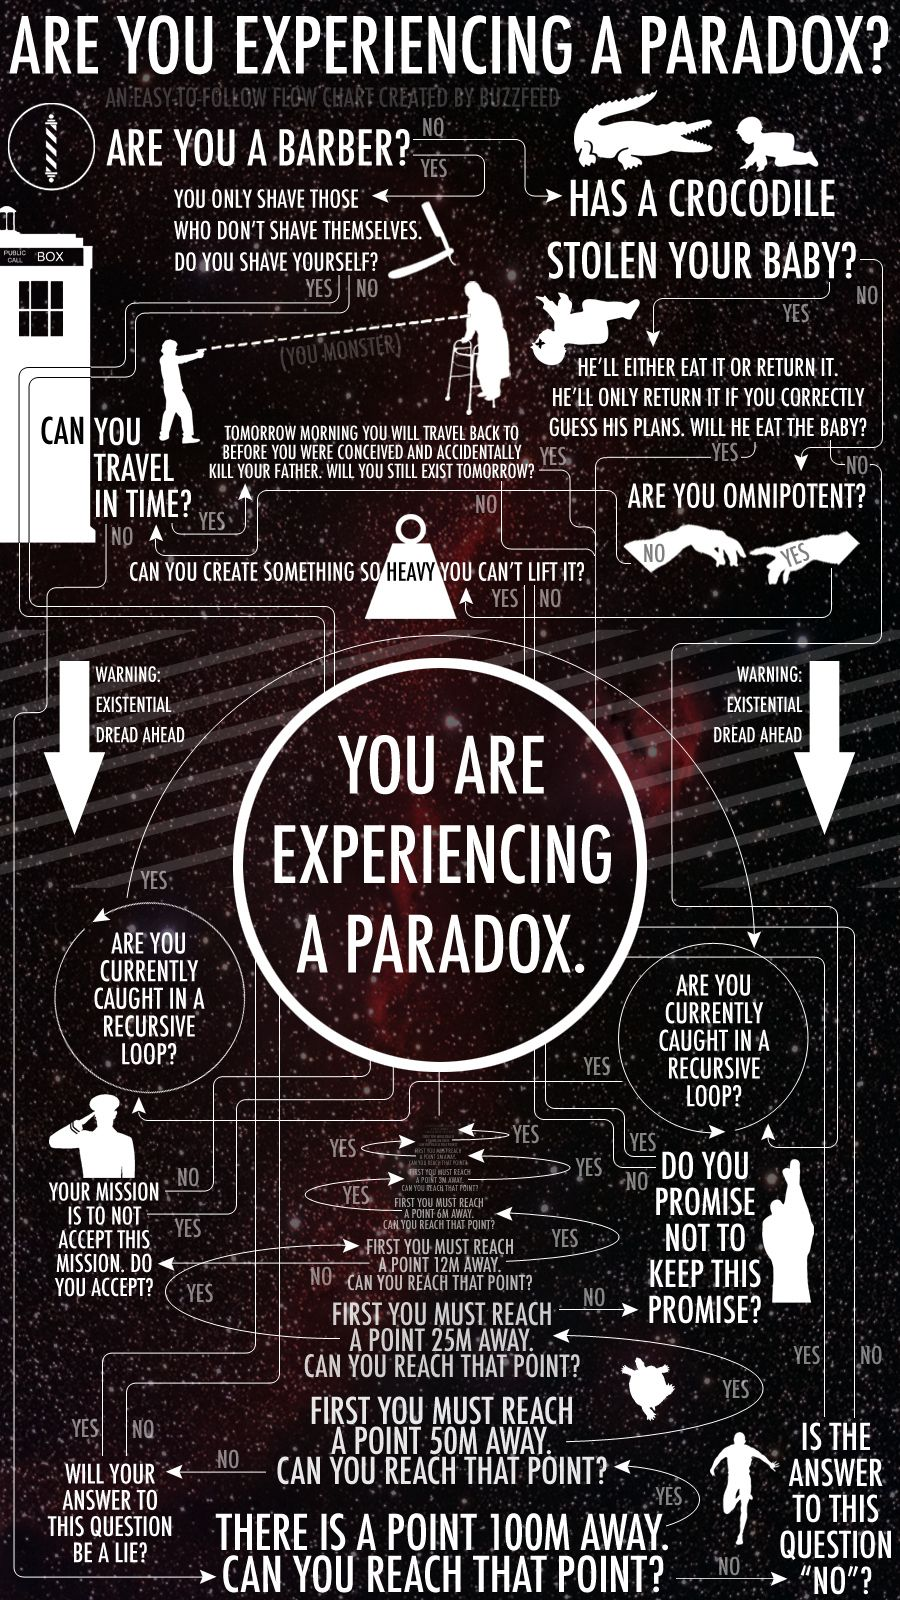 Are you experiencing a paradox?  http://www.buzzfeed.com/awesomer/are-you-experiencing-a-paradox/